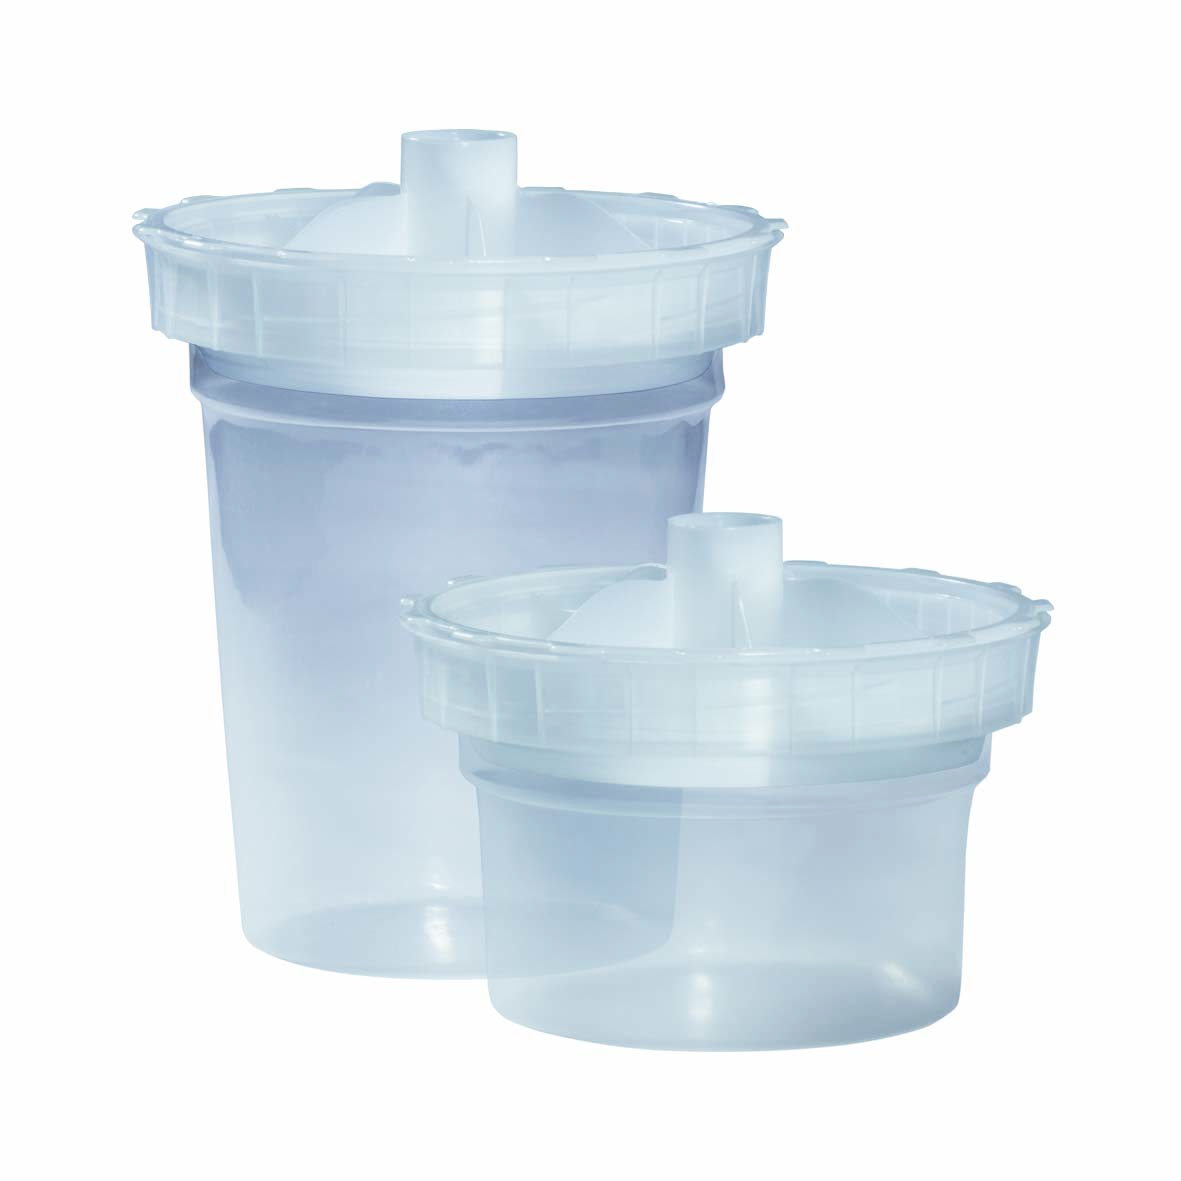 Farécla OPS Flexible Paint Cups